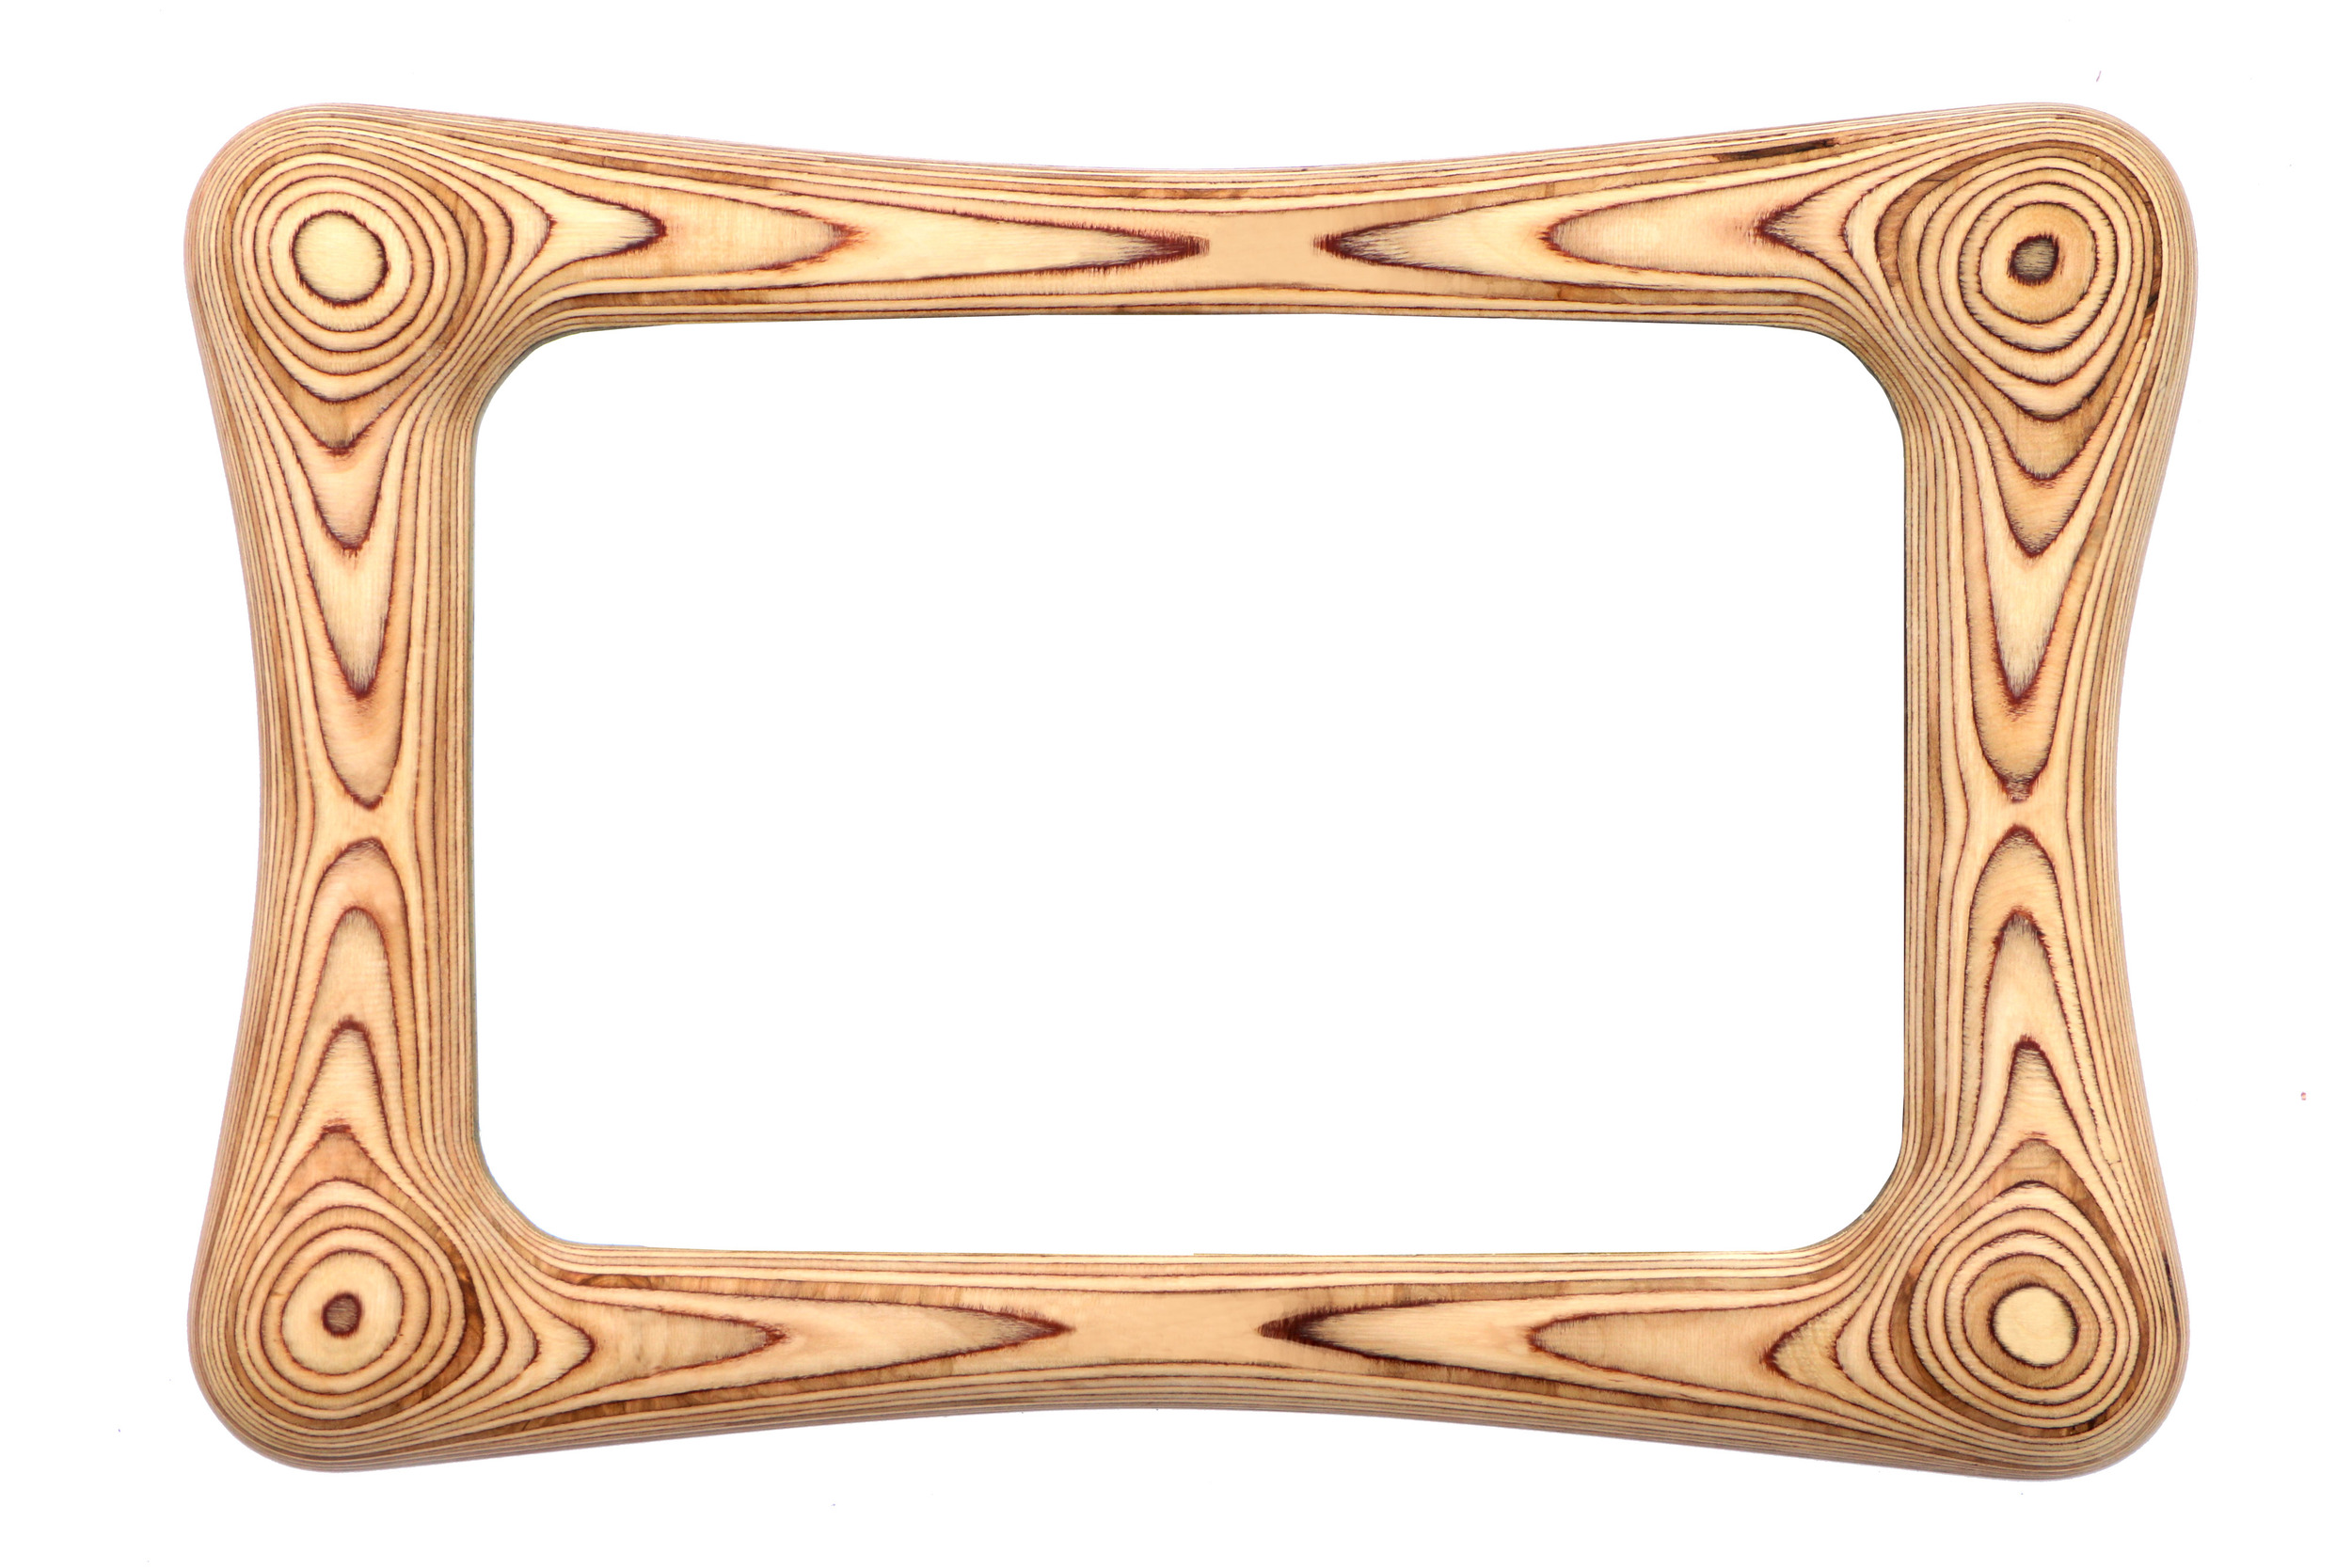 Hand crafted mirrors